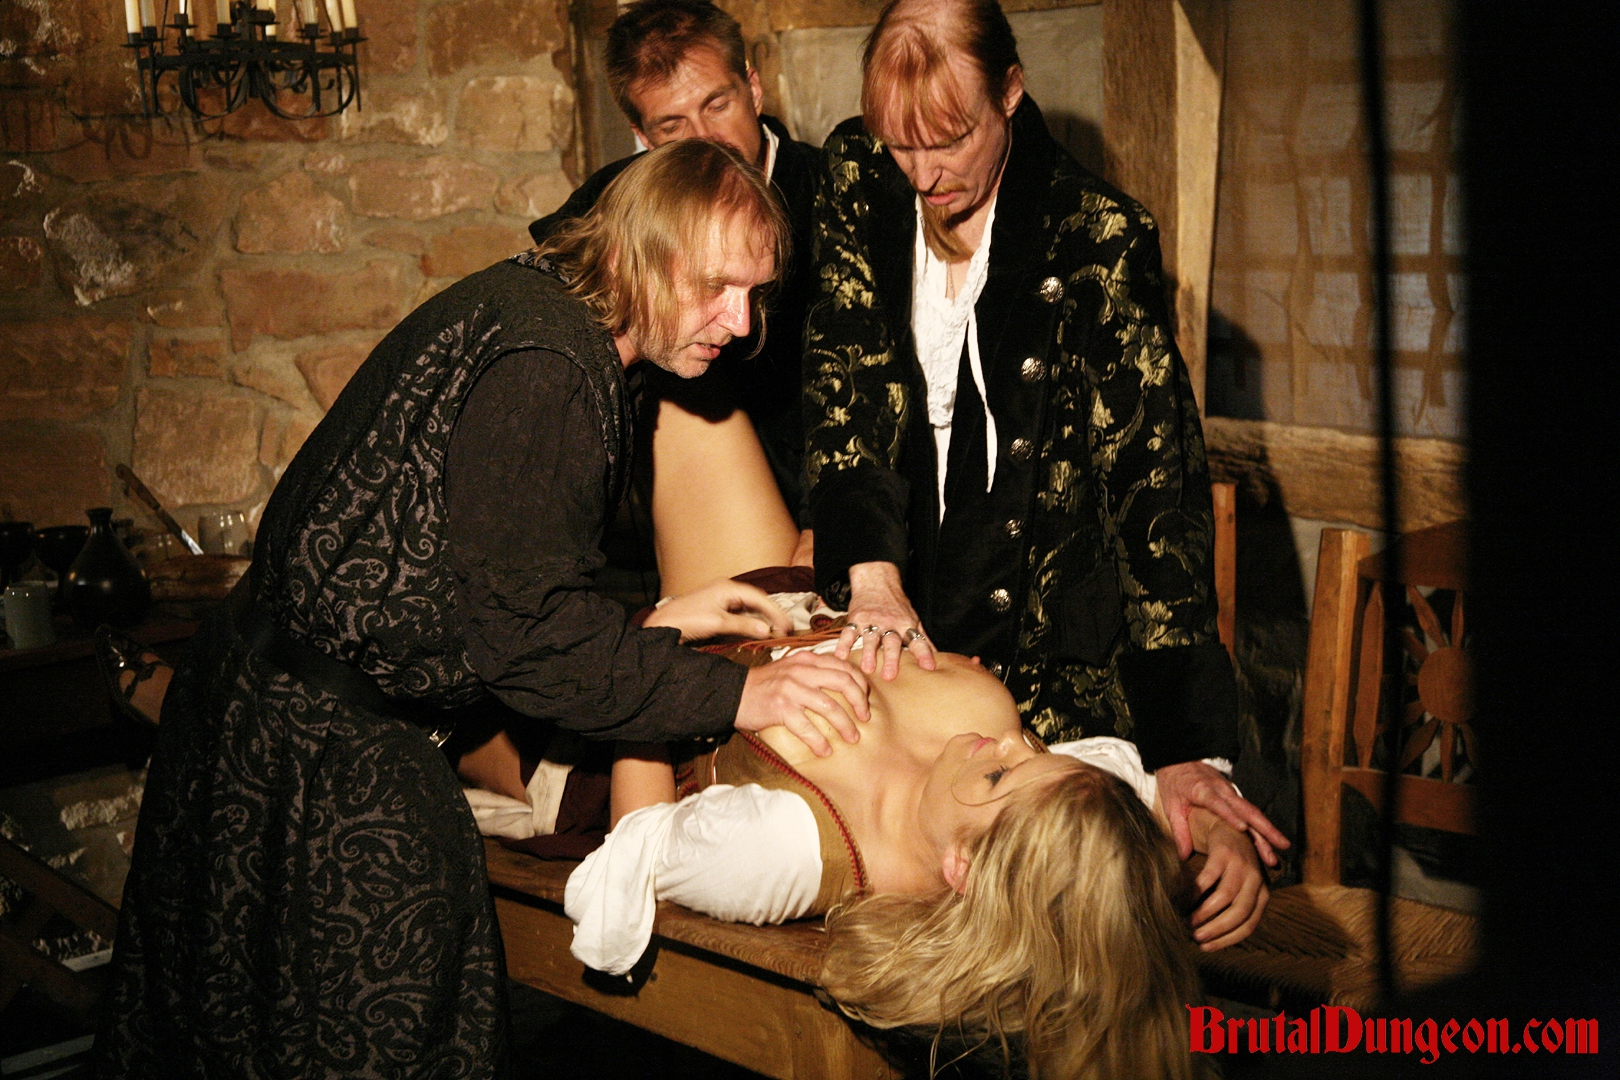 Blonde magda imprisoned bdsm gang bang  magda is a blonde barmaid who also offers sexual services to some of her guests for money  she is doing obscene witchcraft to make those men willing  she s arrested and punish in the bar  she must endure imprisonmen. Magda is a blonde barmaid who also offers sexual services to some of her guests for money. She is doing obscene witchcraft to make those men willing. She's arrested and punished in the bar. She must endure imprisonment, BDSM fun, gang bang, water play, spanking, slapping, fingering, breast, nipple and cunt torment. She actually likes it. Her attitude will certainly change when she's brought into the dungeon.